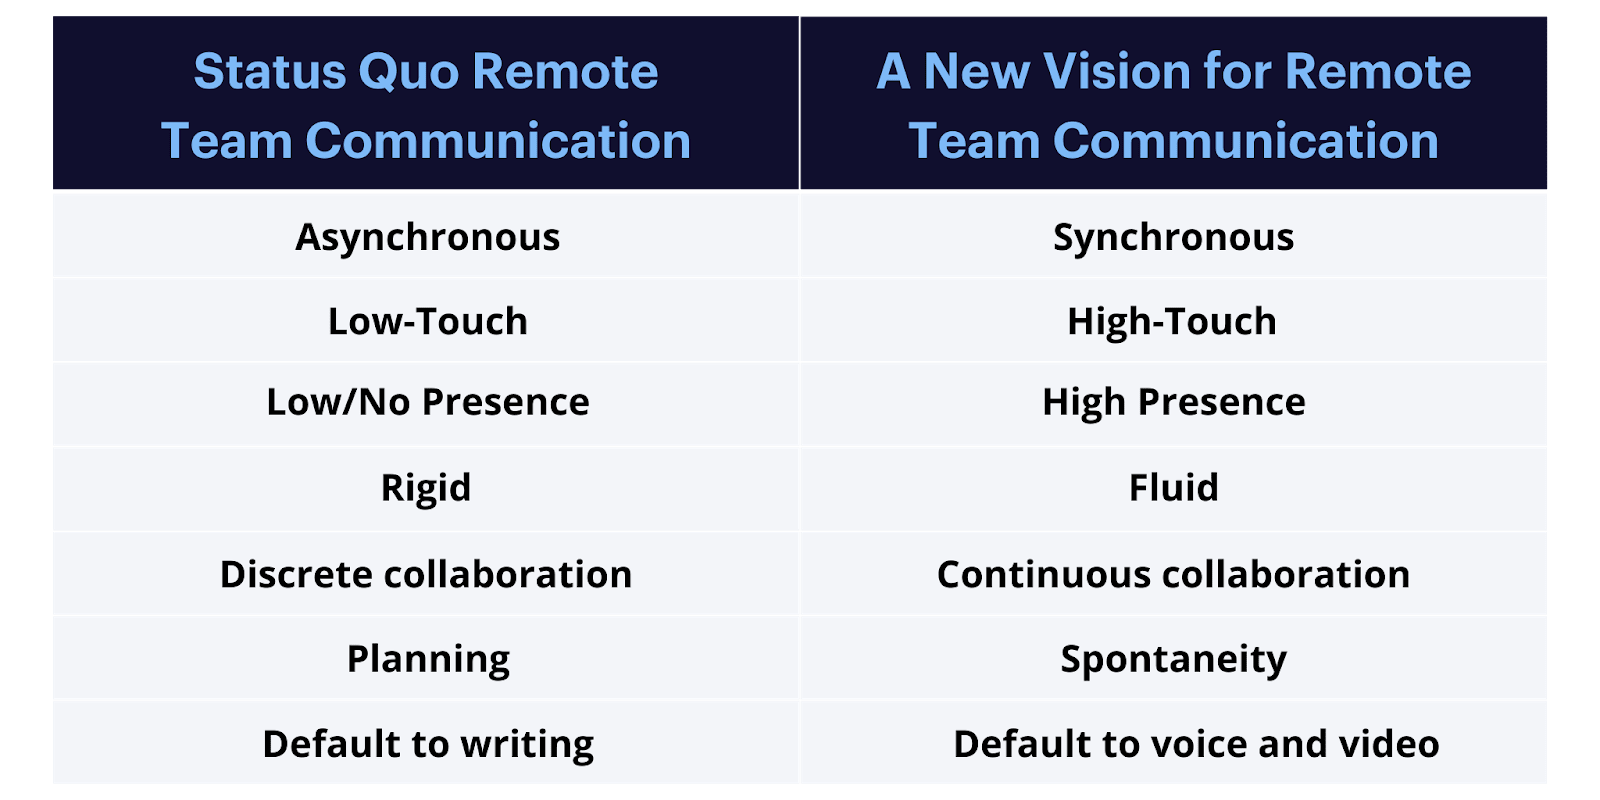 Table showing a new vision for remote team communication